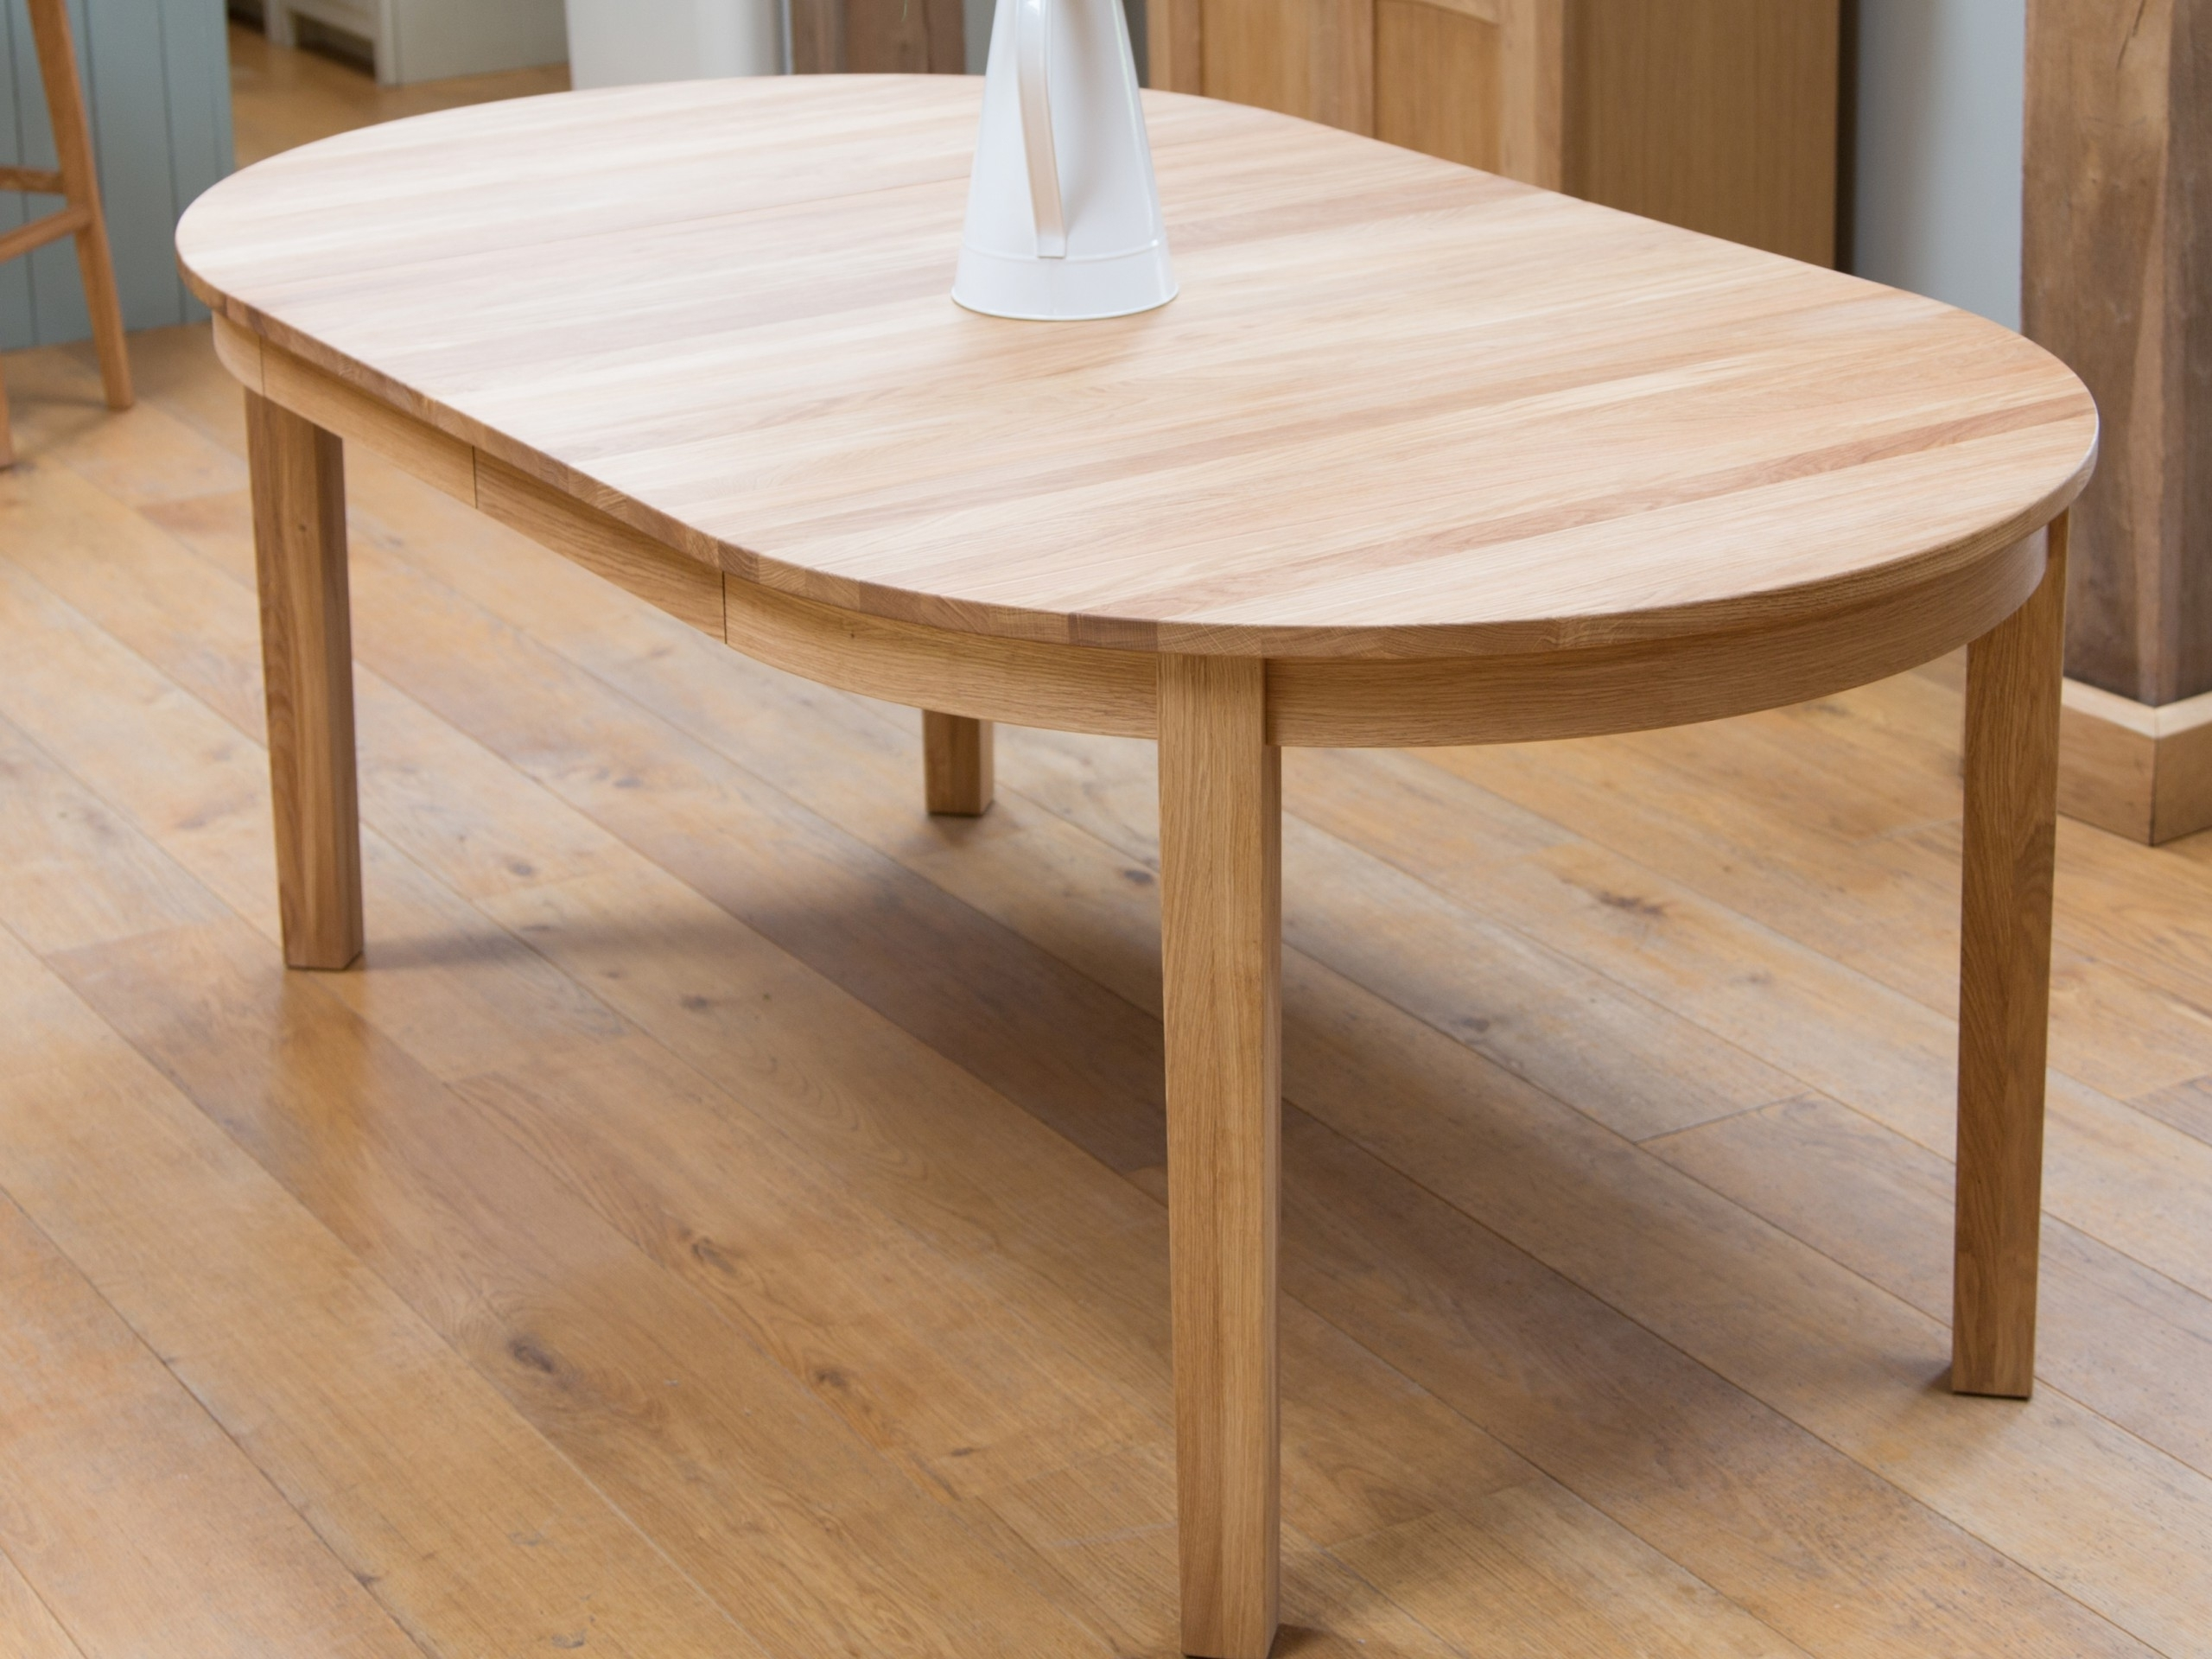 Best And Newest Round Extending Dining Tables And Chairs Intended For Round Extendable Dining Table Design (View 14 of 25)